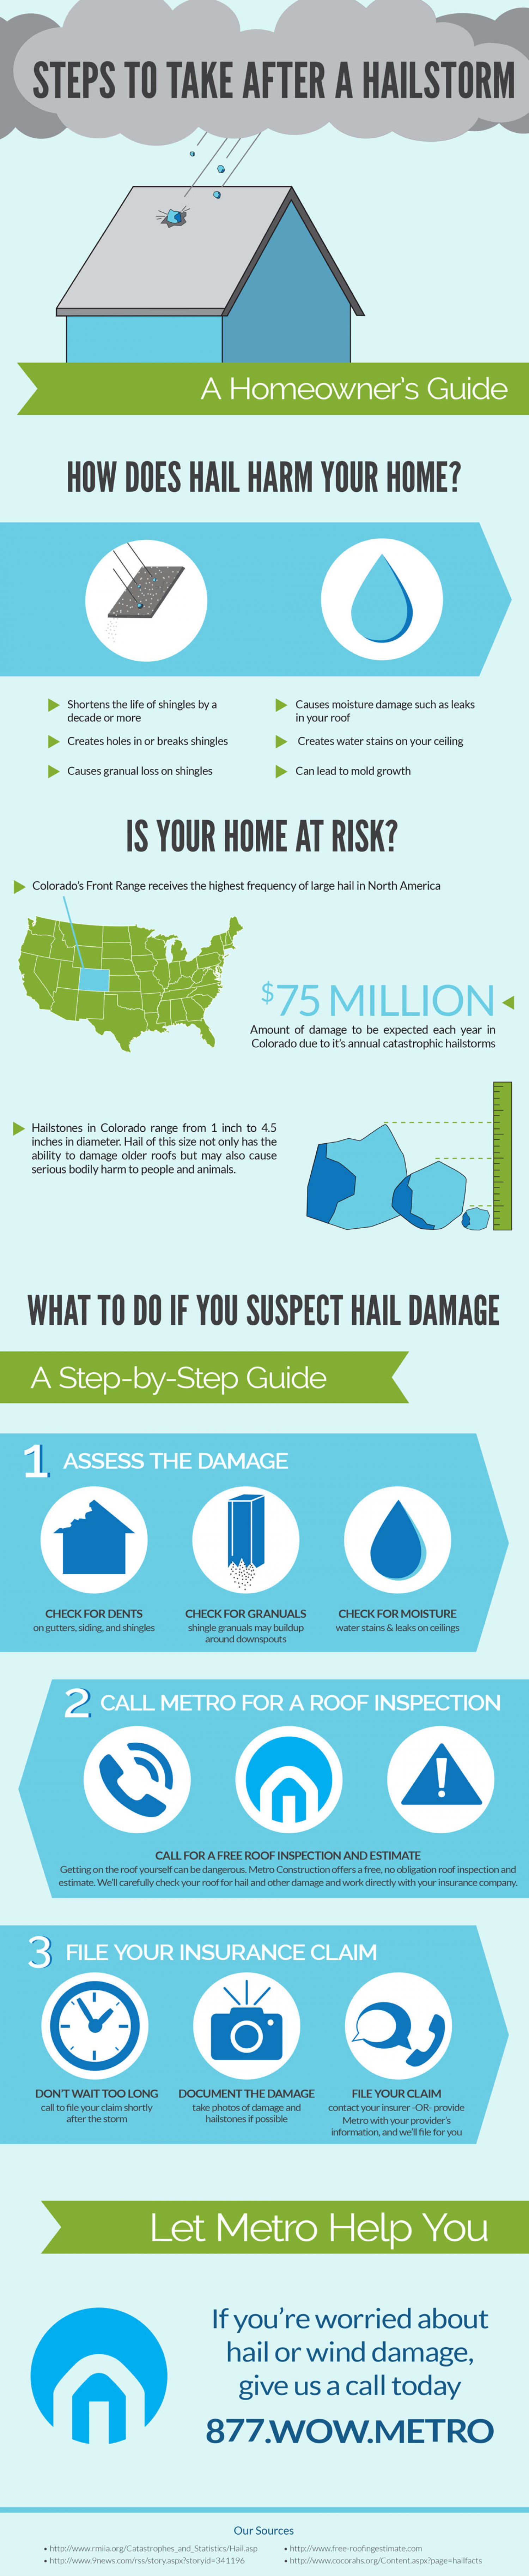 How to Heal Your Home After a Hailstorm Infographic